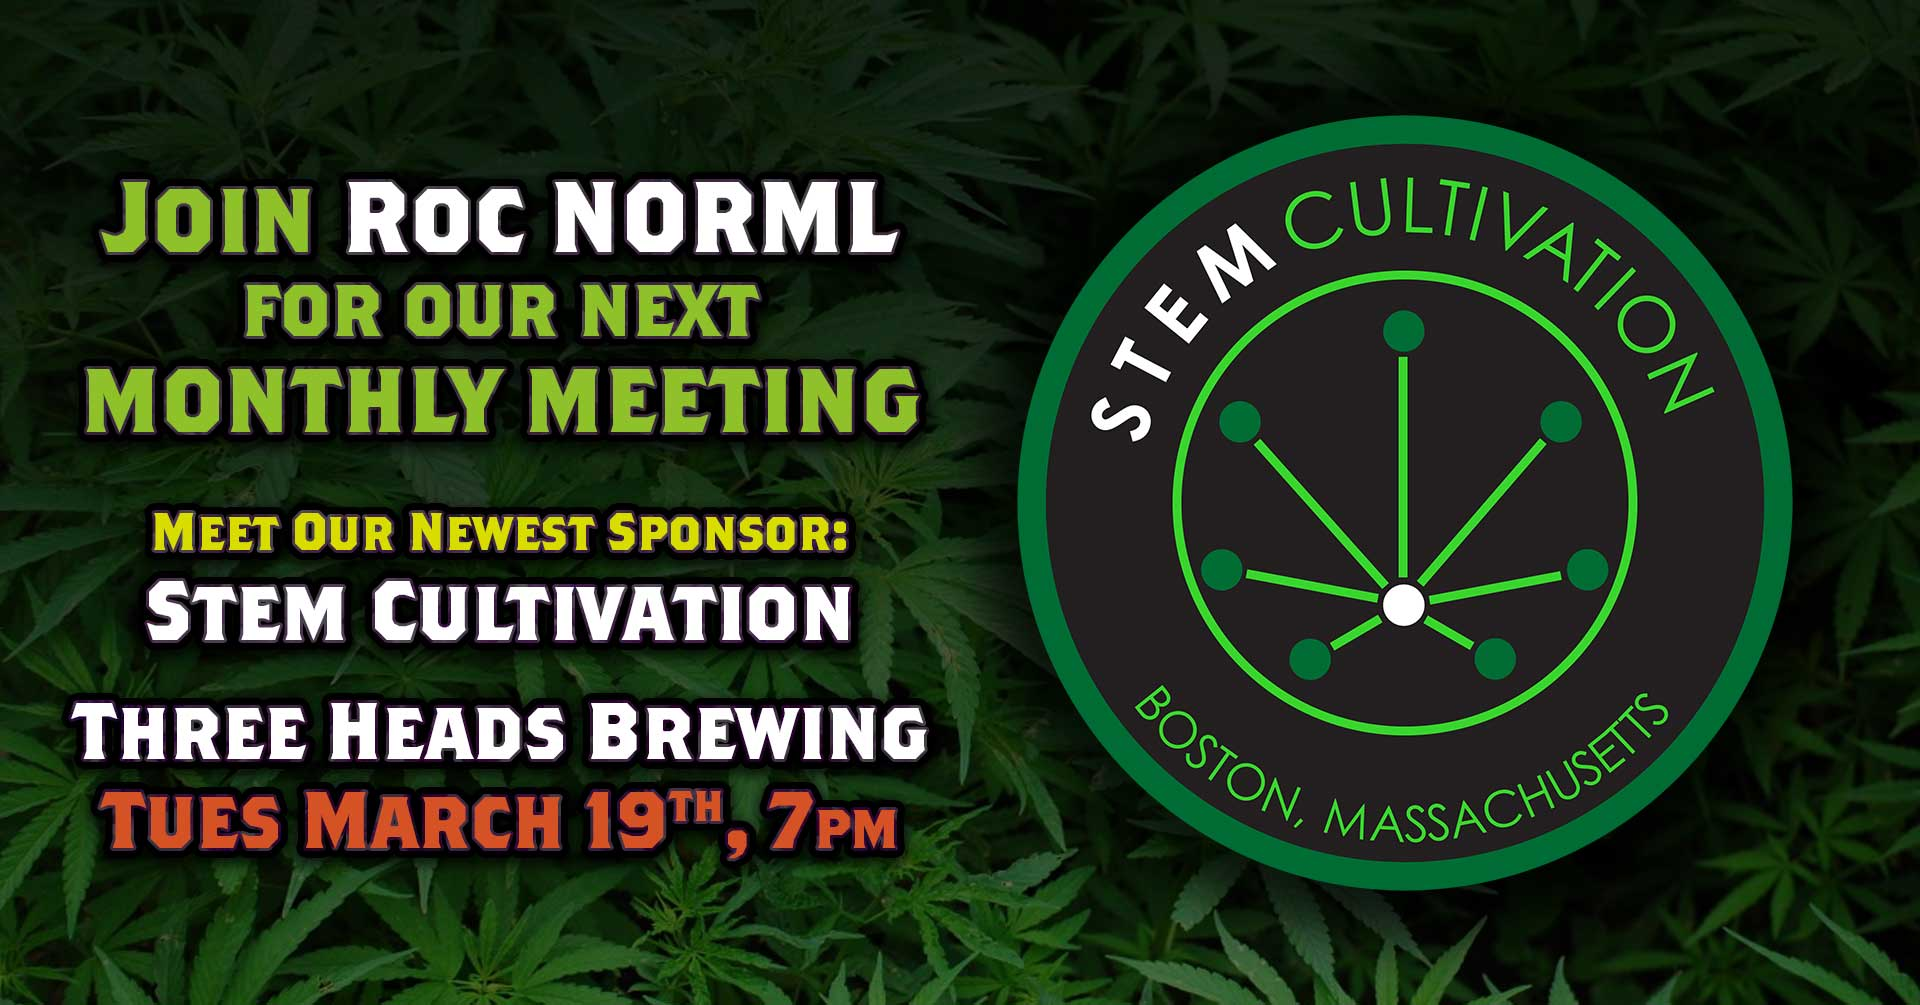 Roc NORML March 19 Meeting